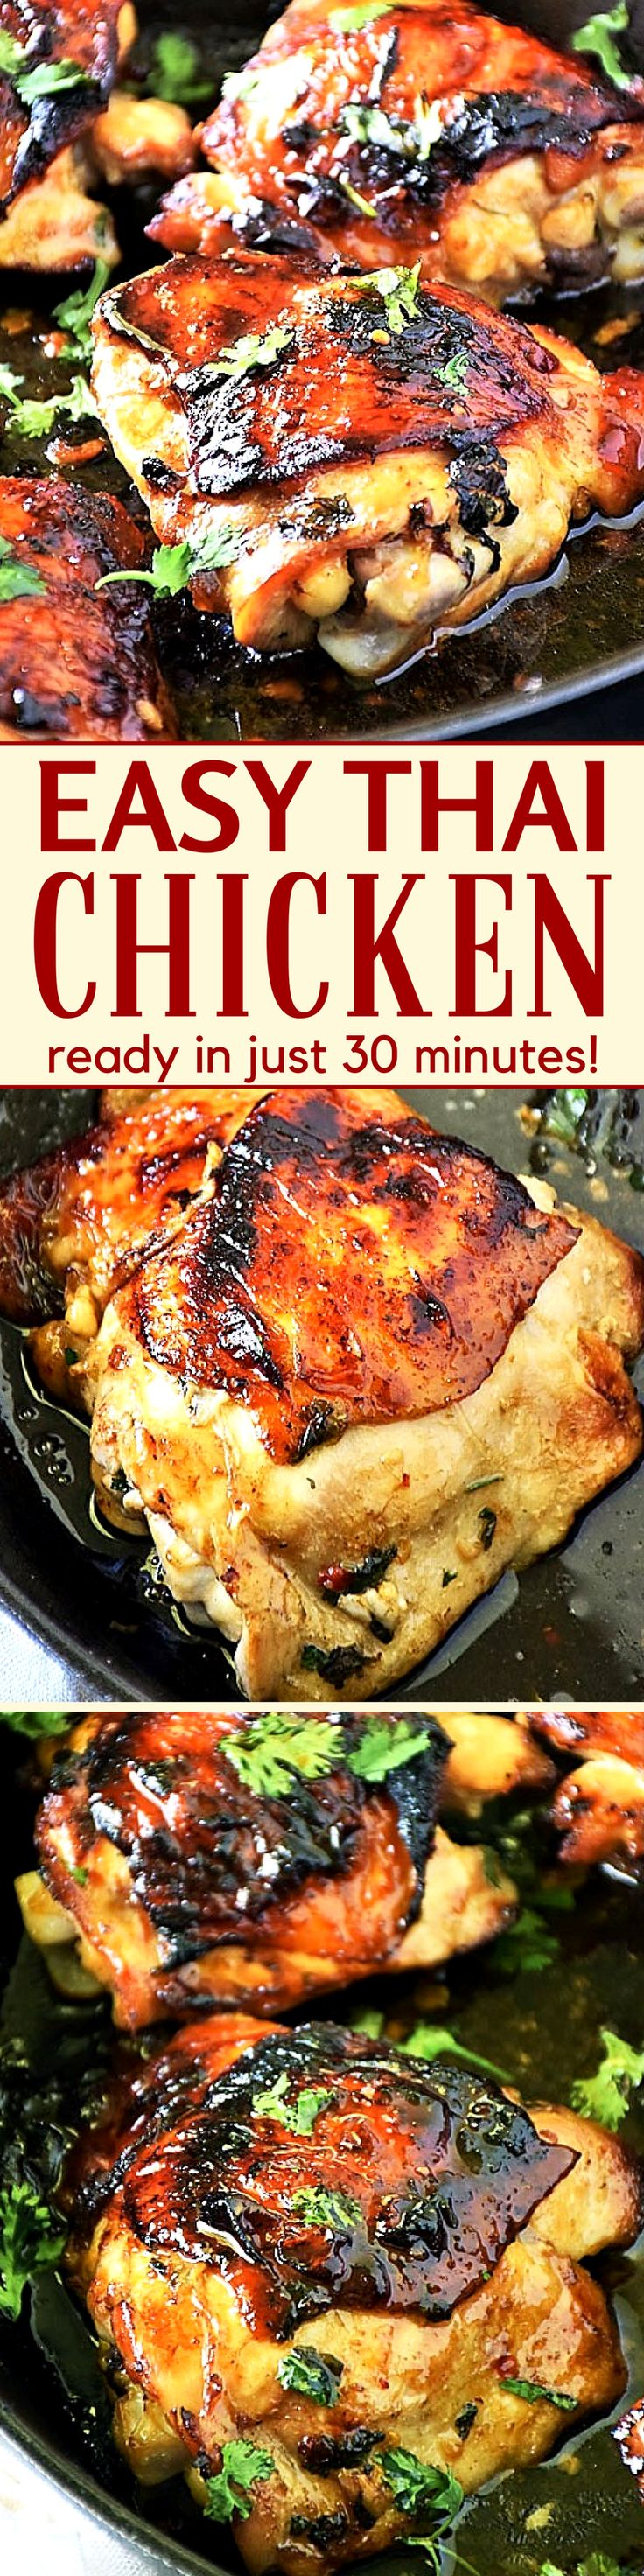 My Easy Thai Chicken thigh recipe is the answer to your dinner dilemma! Baked and on the table in just 30 minutes, this easy chicken recipe is loaded with fresh ingredients to maximize flavor! Add it to your family meal plan this week! #LTGrecipes #ChickenRecipes #ThaiChicken #EasyRecipe #DinnerRecipe